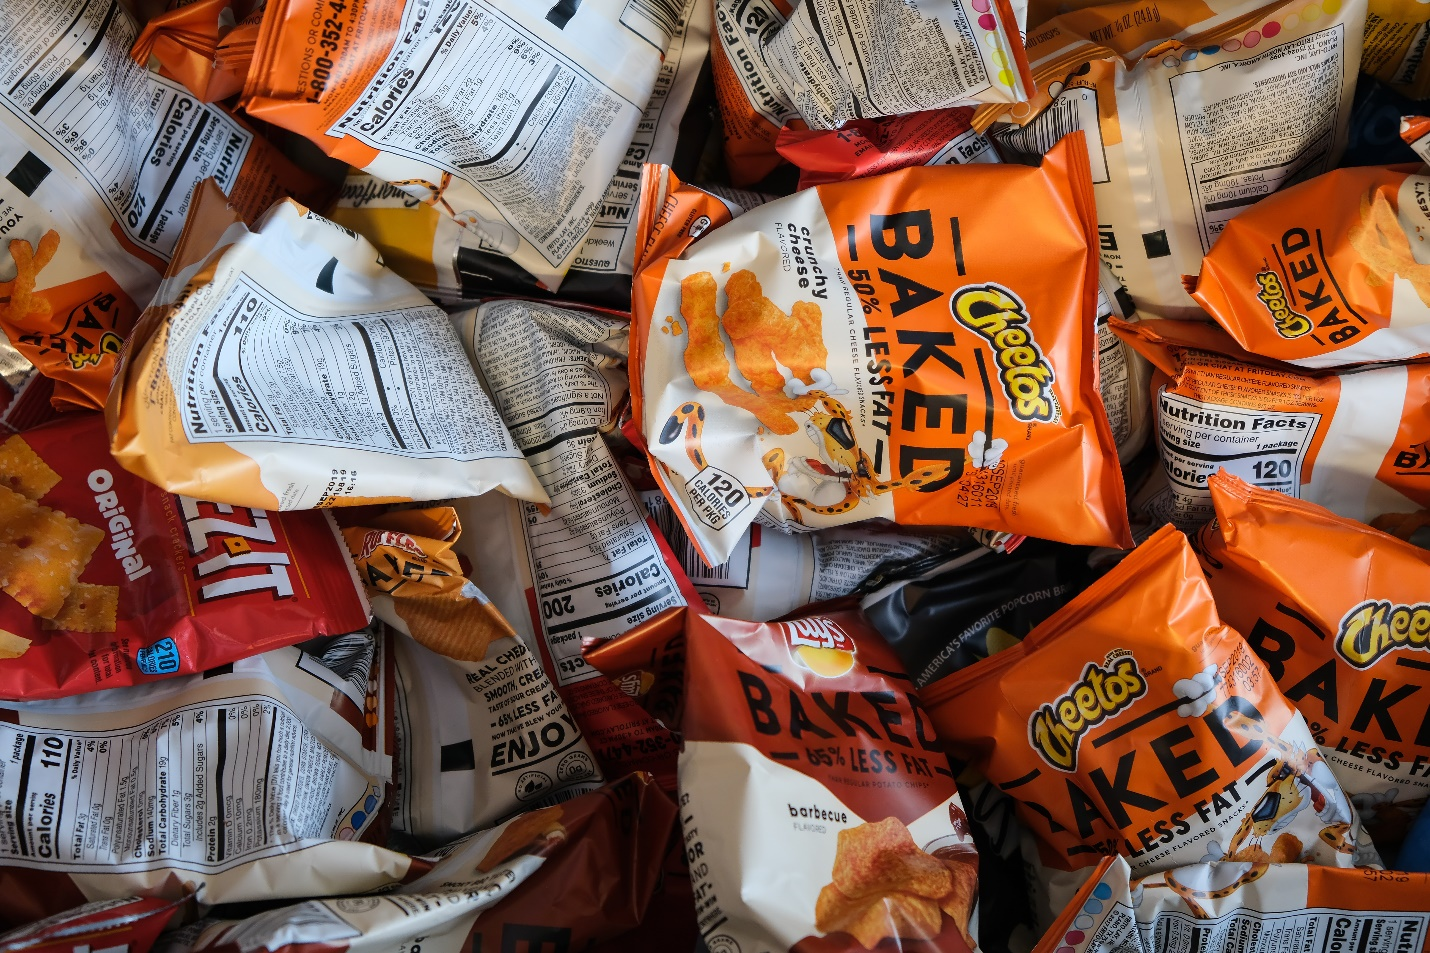 A lot of baked Cheetos packs